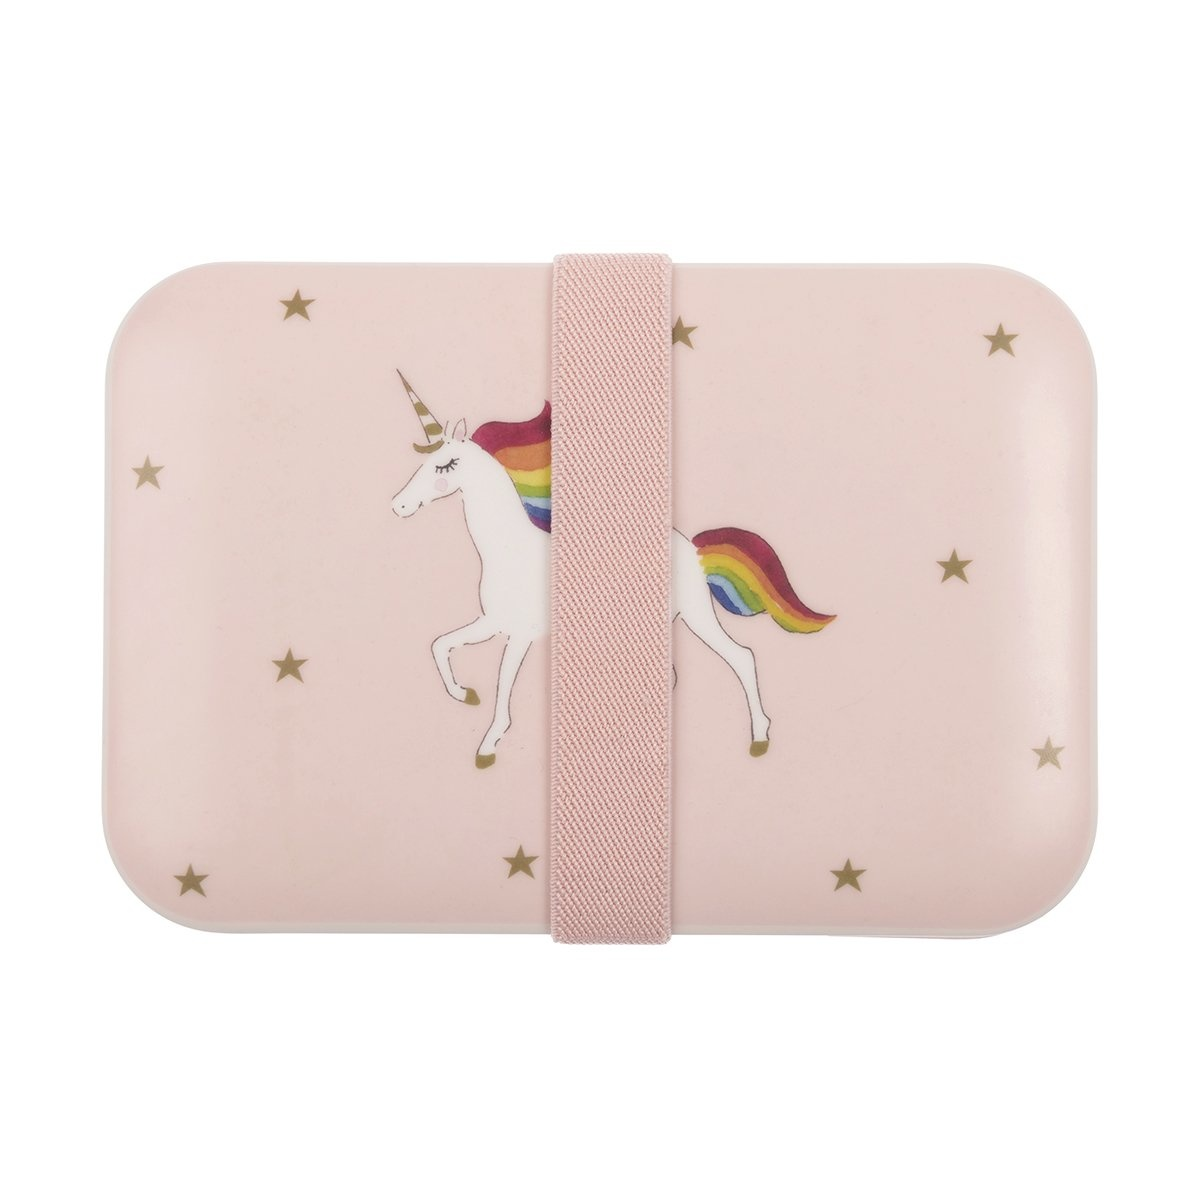 Sophie Allport Unicorn Bamboo Lunch Box